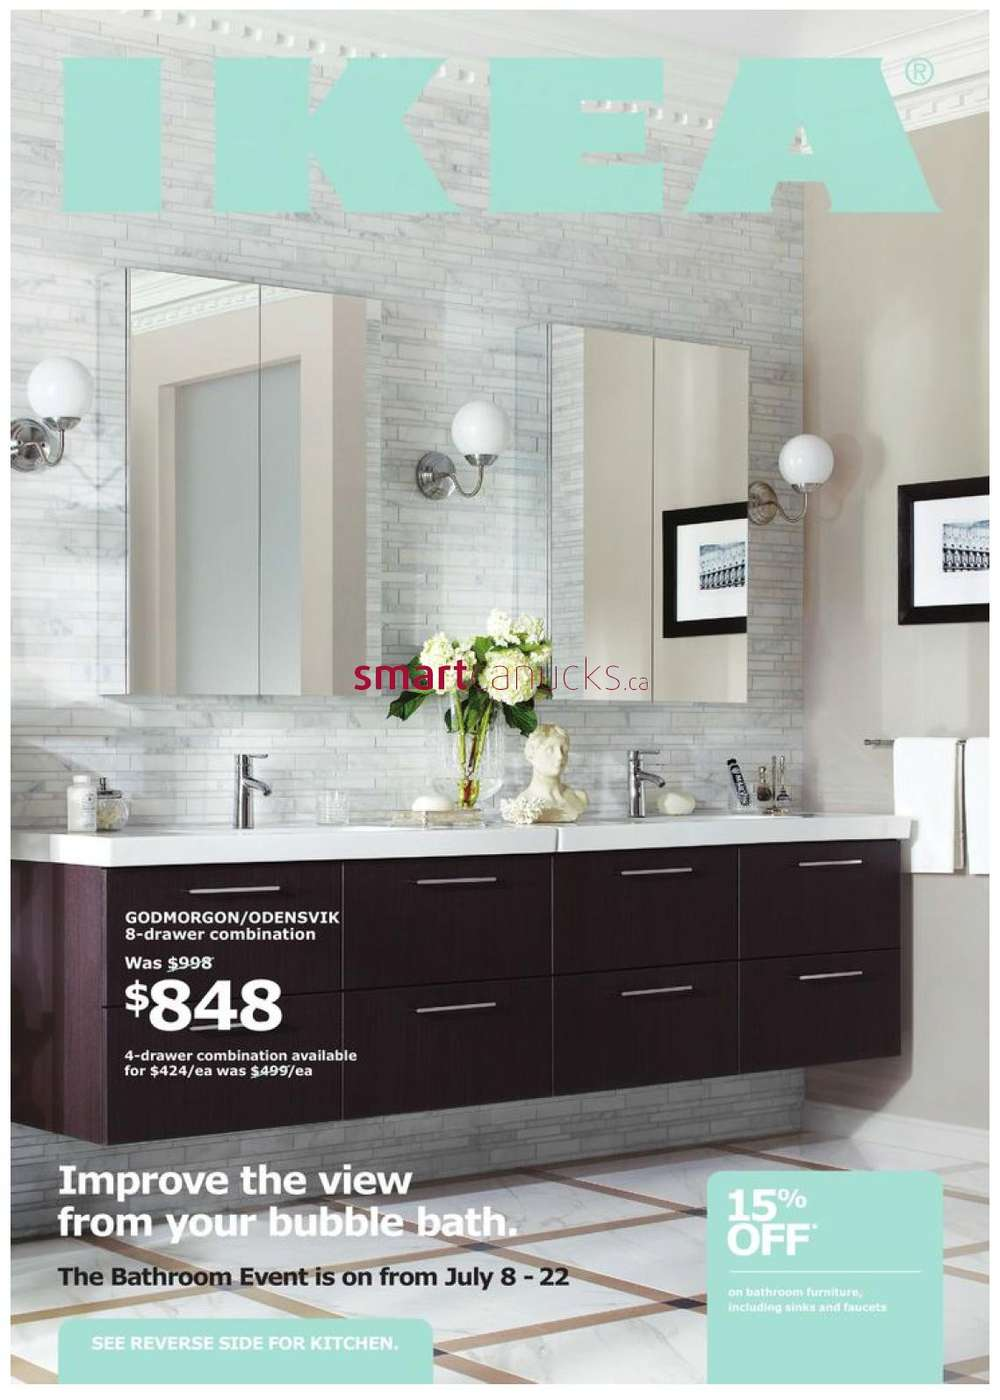 Ikea canada flyers ikea bathroom event flyer july 8 to 22 mozeypictures Images